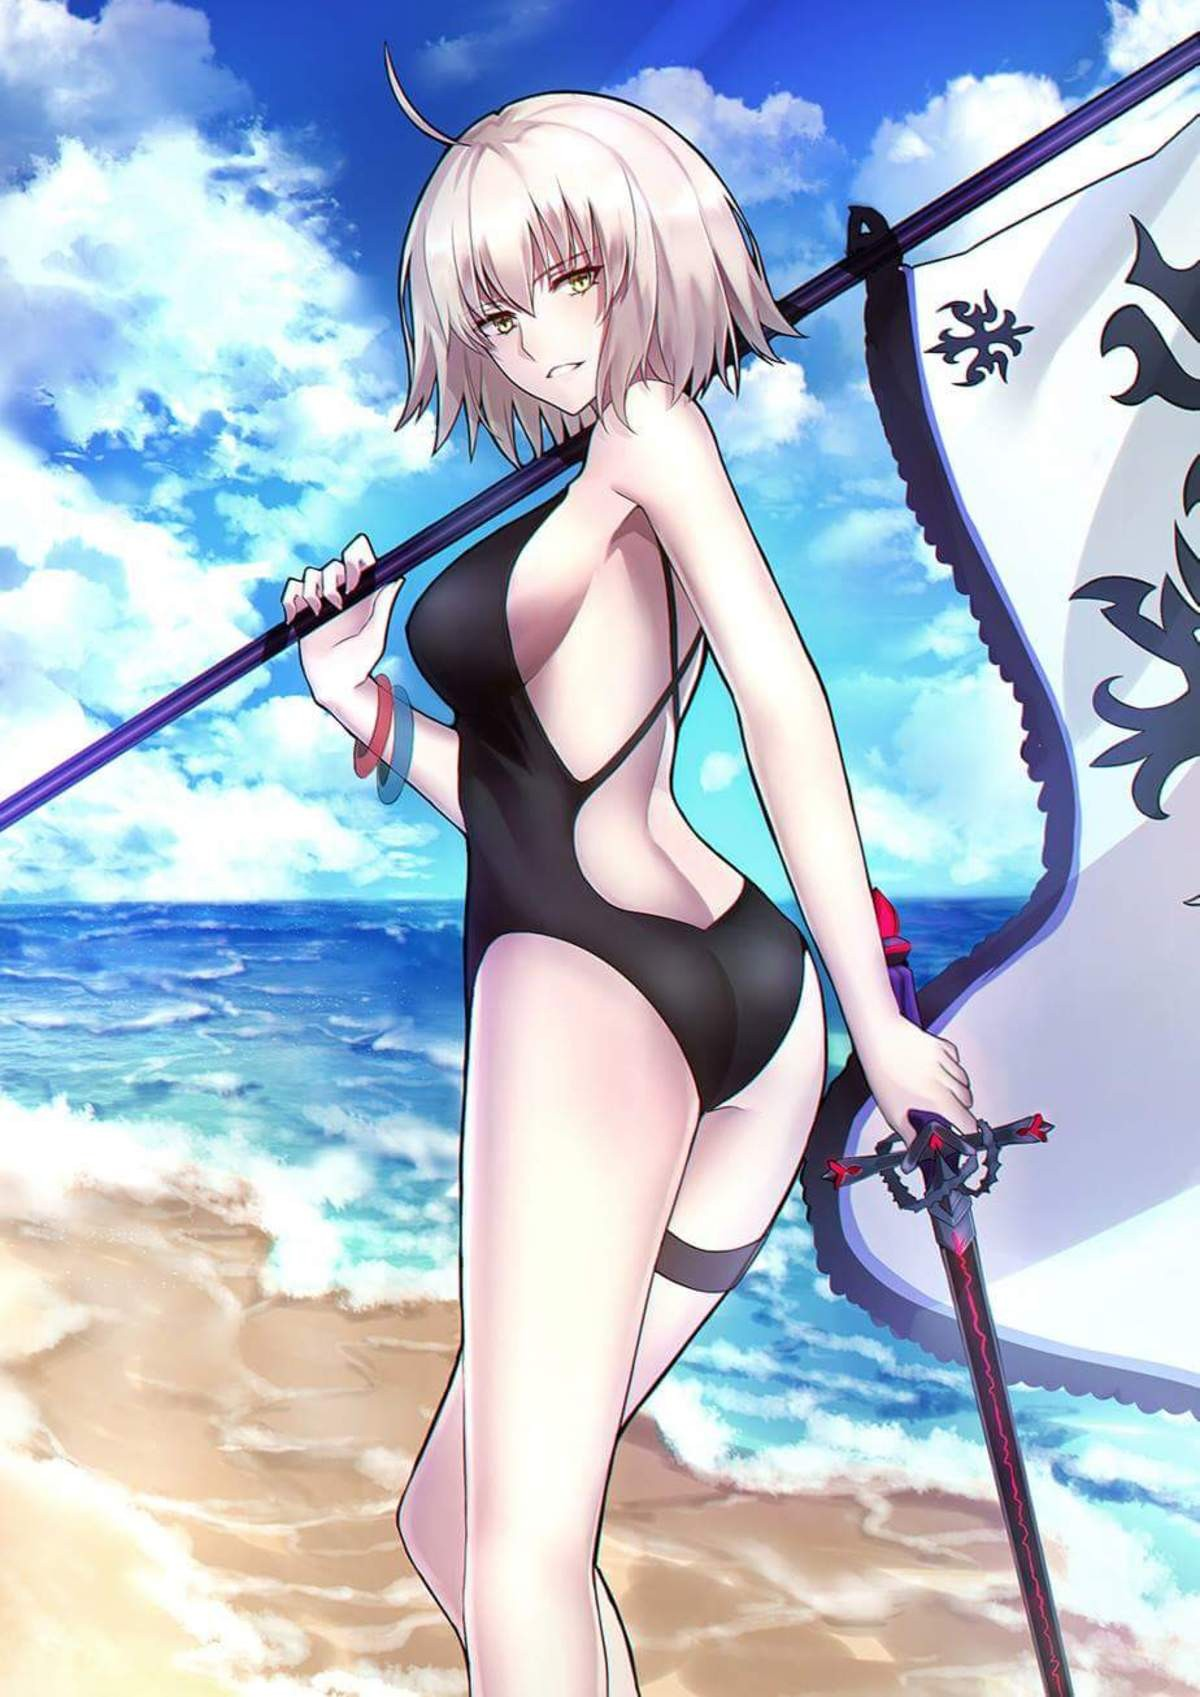 Daily Update: I'm Still Saving For Jalter. illust.php?mode=medium&illustid=67804992 join list: BewbDudes (2619 subs)Mention History join list:. >Only 60